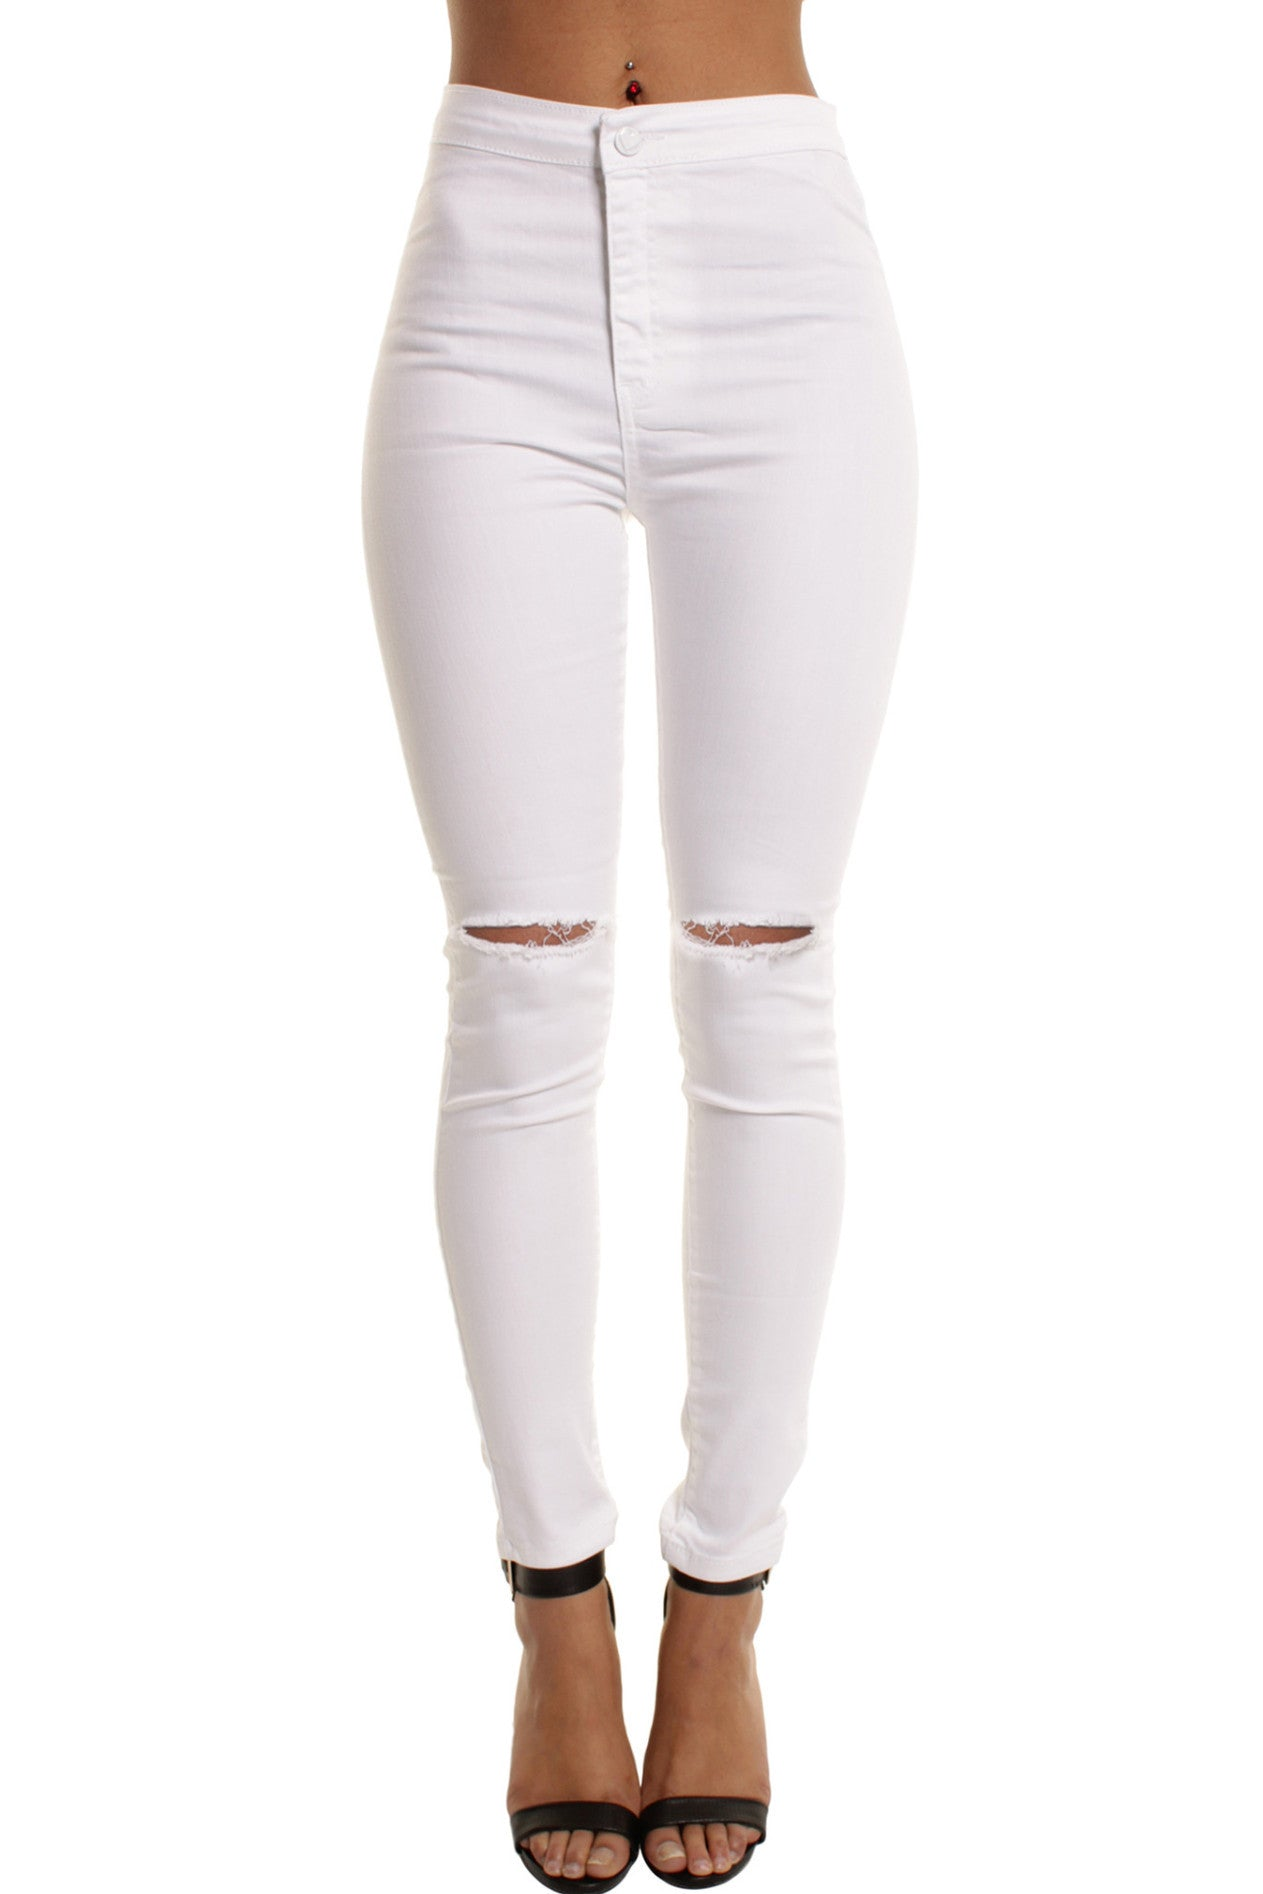 Free shipping & returns on high-waisted jeans for women at techclux.gq Shop for high waisted jeans by leg style, wash, waist size, and more from top brands. Free shipping and returns.